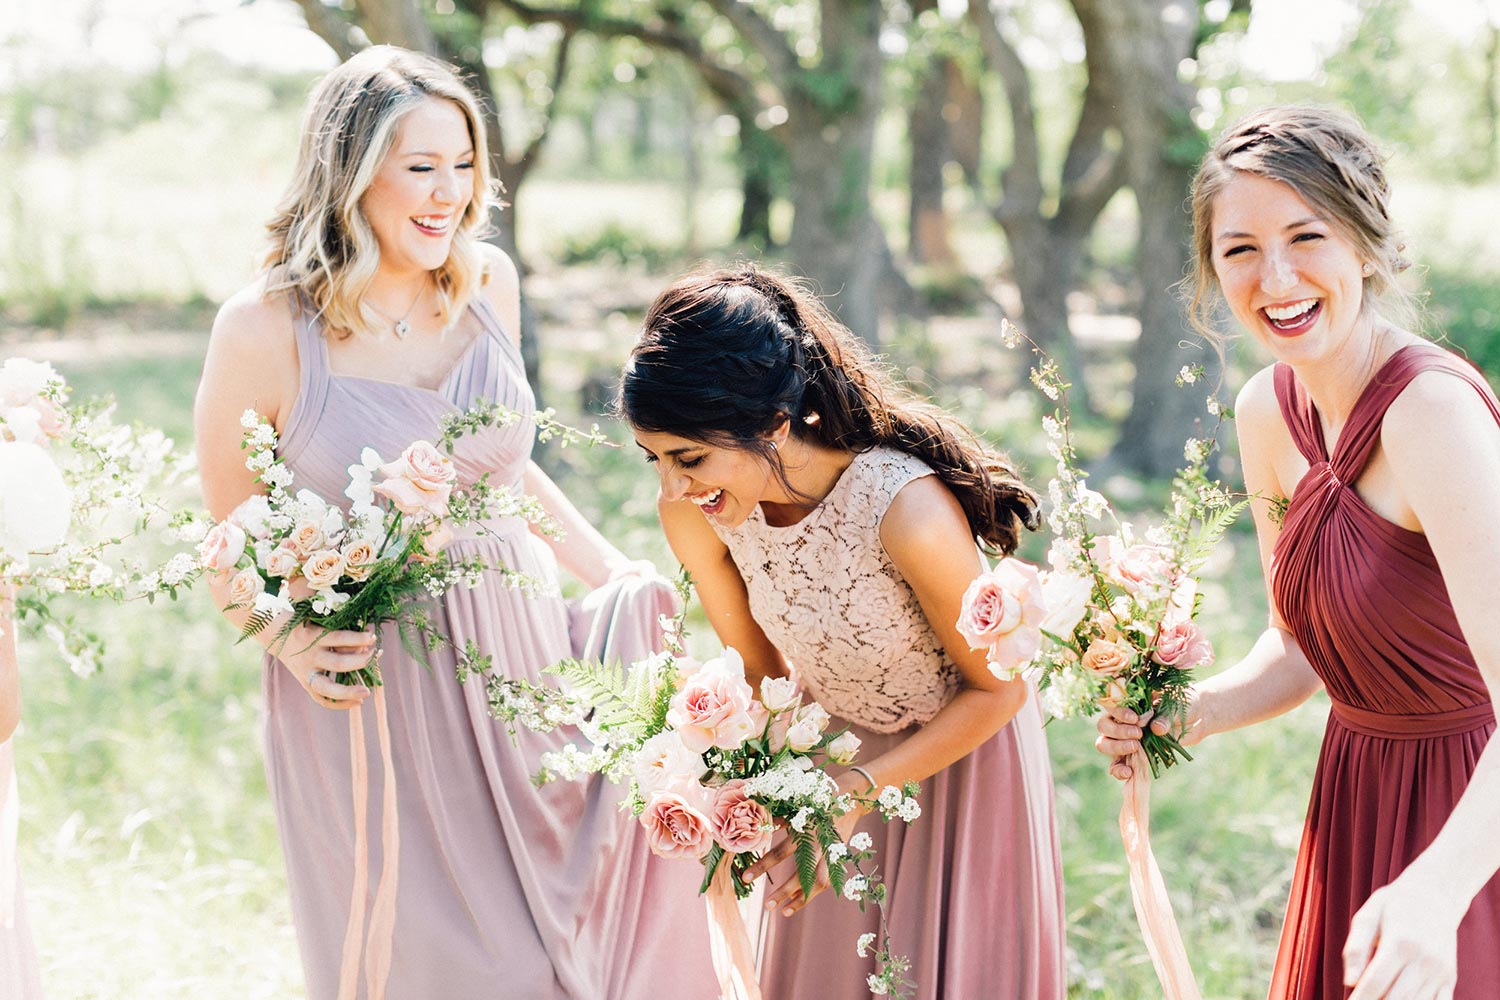 Bridesmaids bouquets by Color Theory Collective